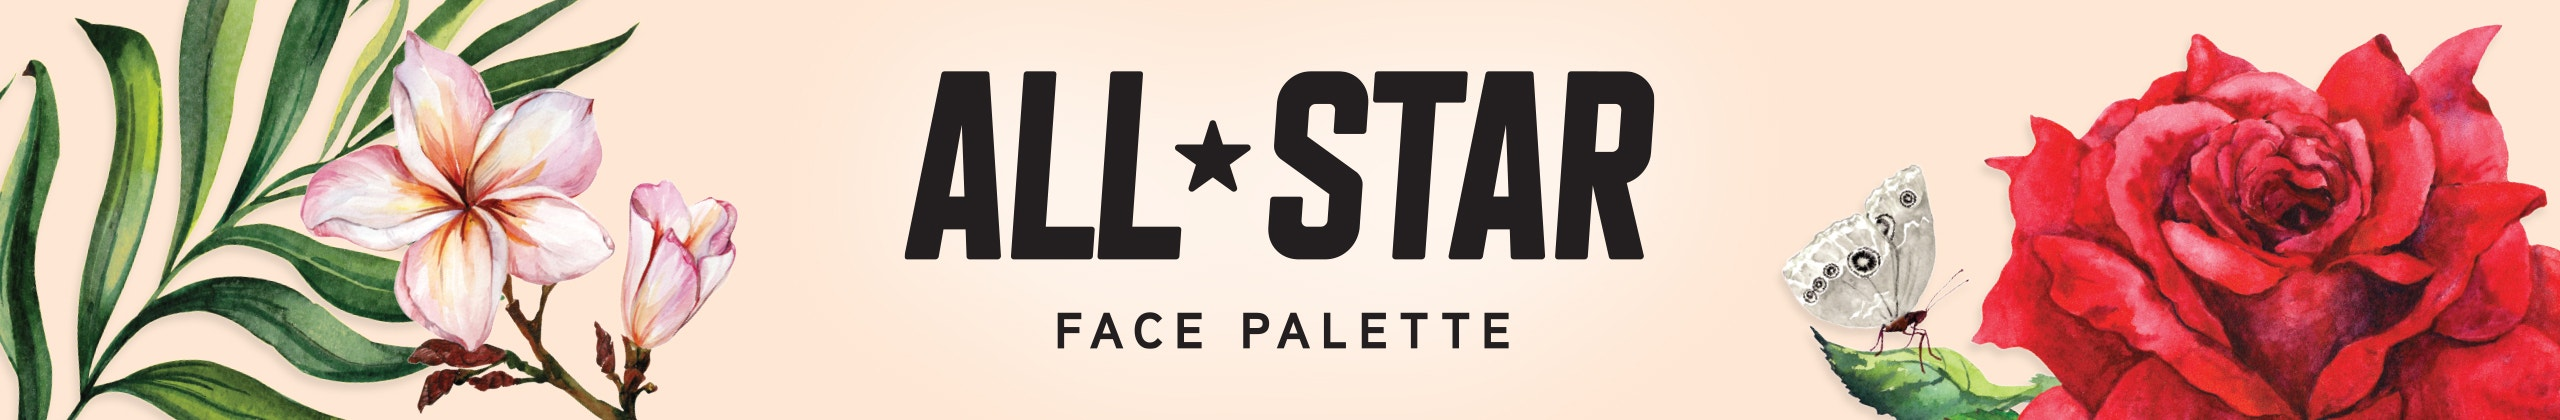 Physicians Formula | All-Star Palette - Flowers, leaves, butterfly on nude background